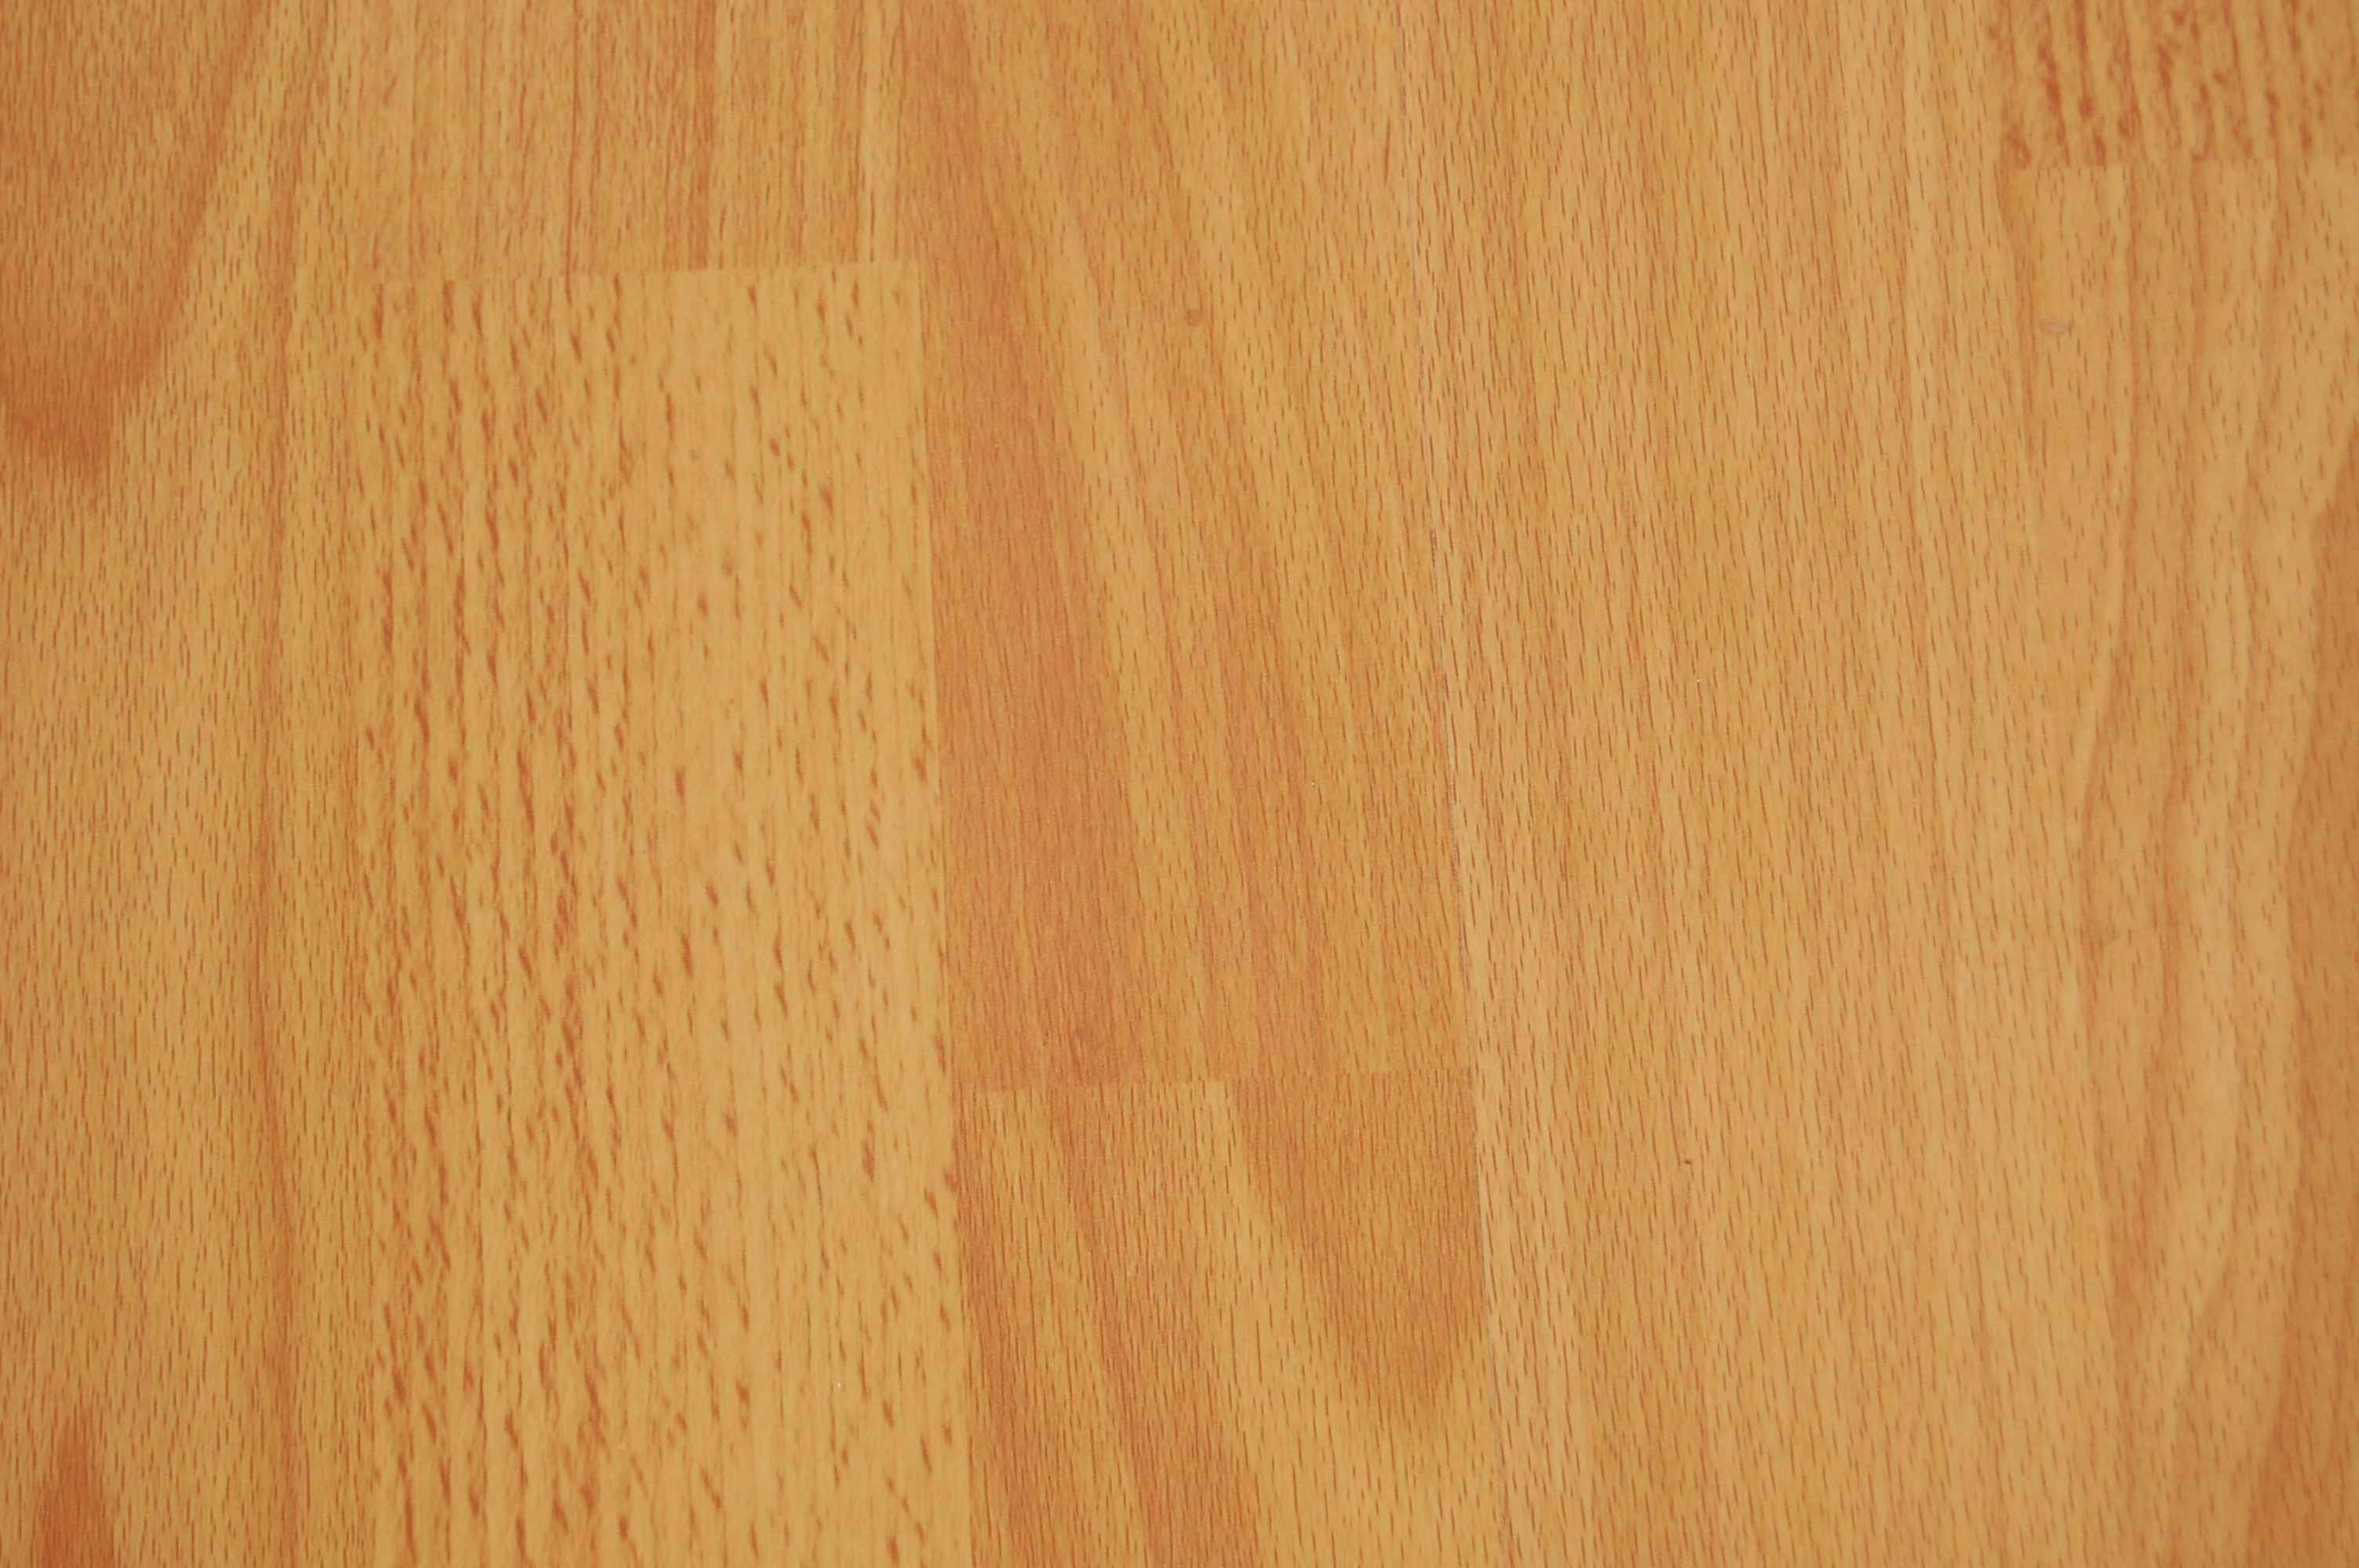 Laminate flooring wood and laminate flooring for Laminated wood